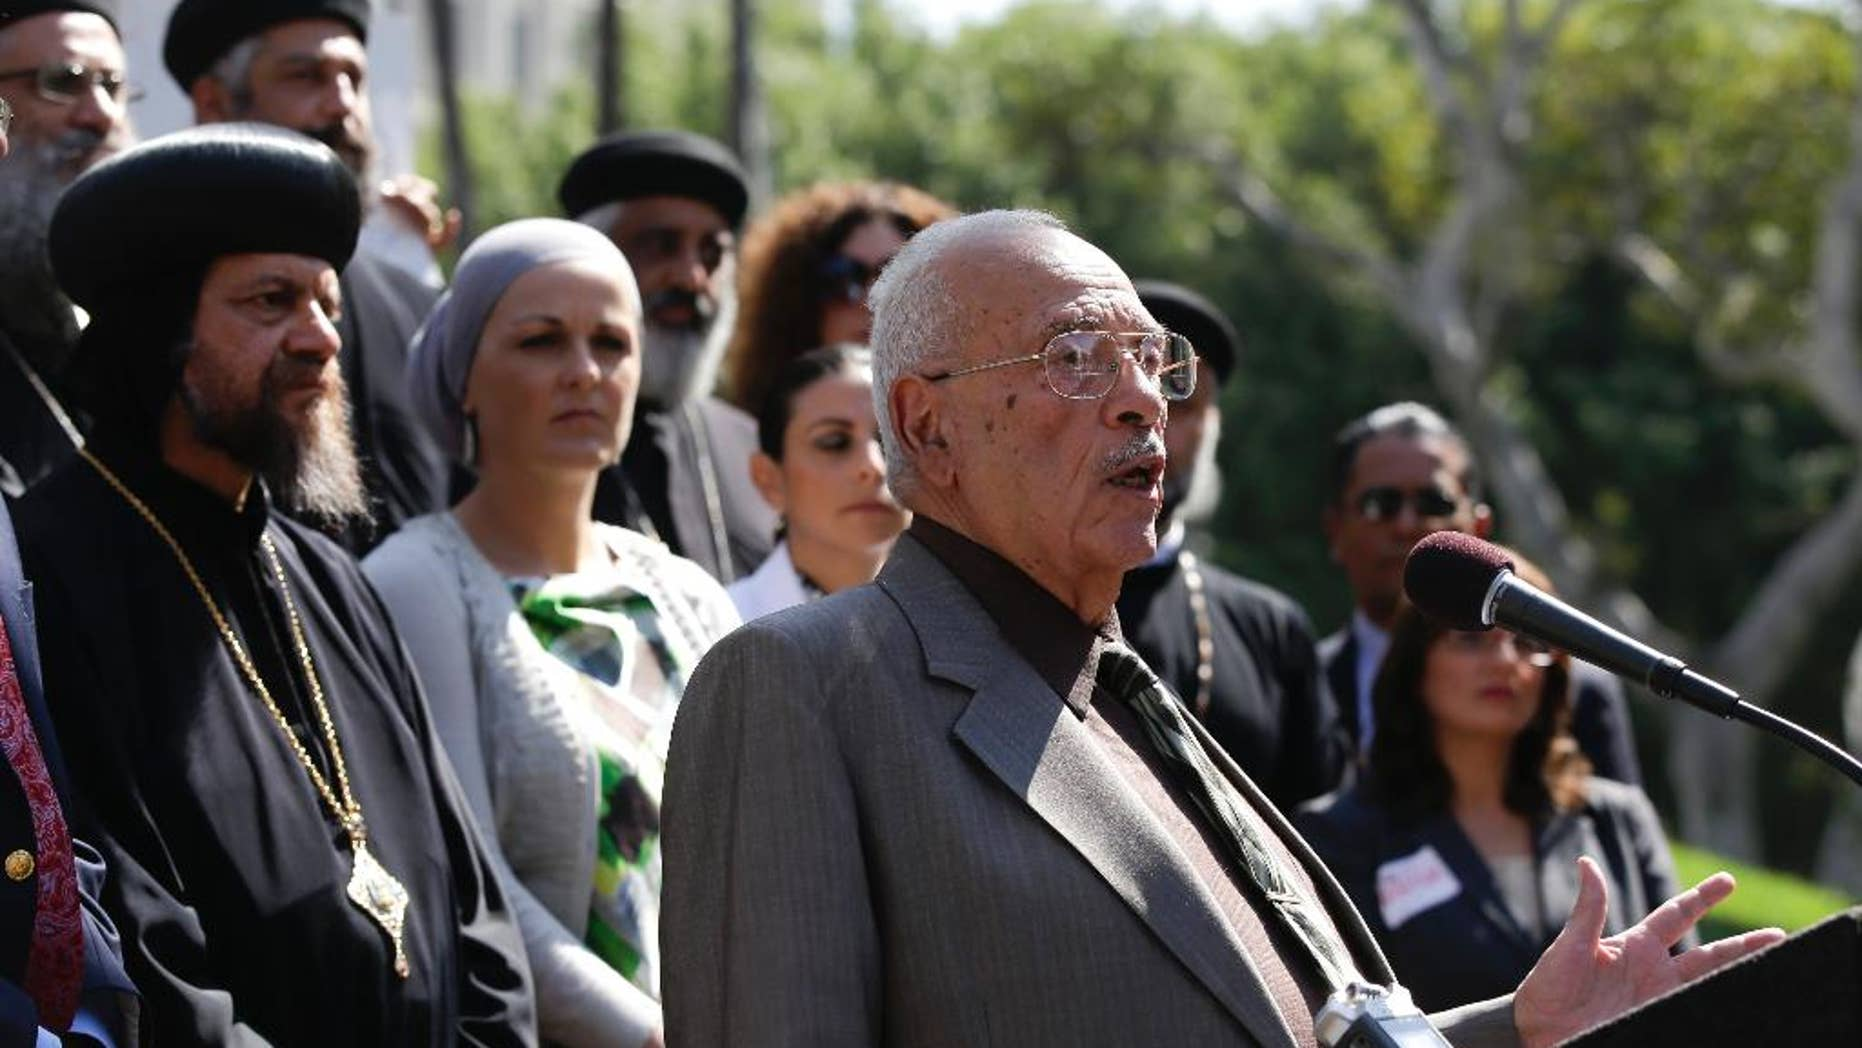 FILE - In this Sept. 17, 2012, file photo, Dr. Maher Hathout, Senior Adviser of the Muslim Public Affairs Council, center, speaks in Los Angeles to condemn all violent reactions in the Middle East. Hathout, a prominent interfaith leader, hailed as the father of the American Muslim identity, has died at age 79. Salam al-Marayati, president of the Muslim Public Affairs Council that Hathout co-founded, says Hathout died Friday, Jan. 2, 2015, after a yearlong battle with liver cancer.  (AP Photo/Chris Carlson, File)